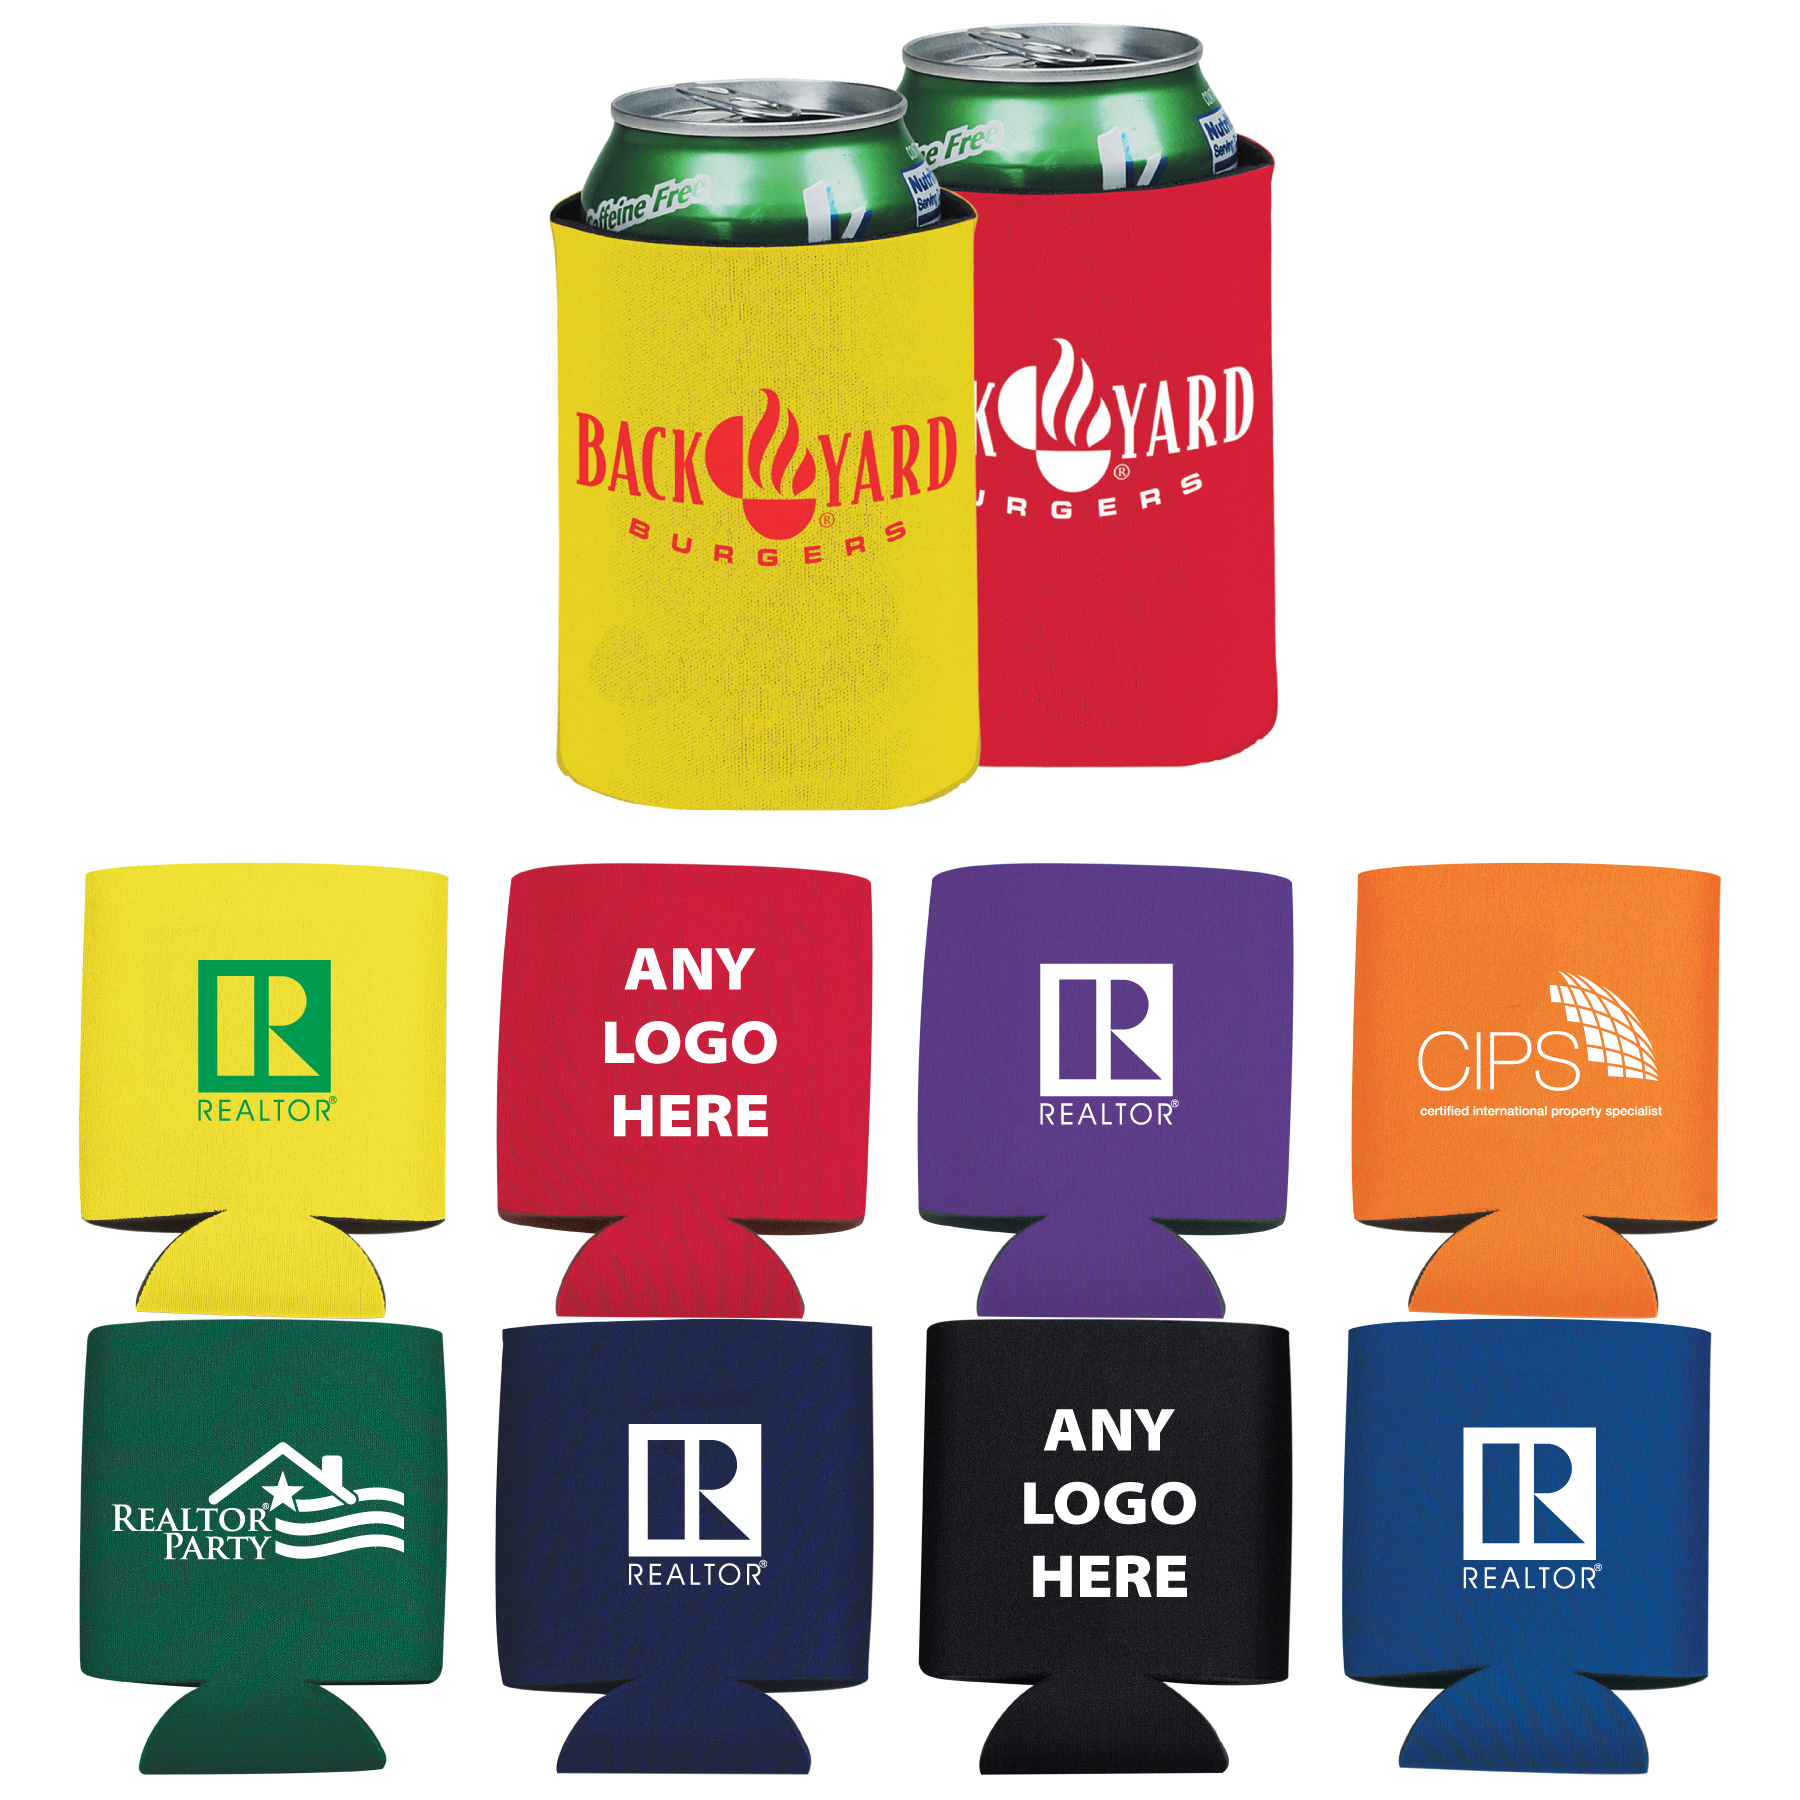 Piper Collapsible Can Insulator (Special Order) Cups,Mugs,Tumblers,Drinks,Drinkwares,glasses,glass,koozies,coozies,coosies,huggies,insulators,foam,cans